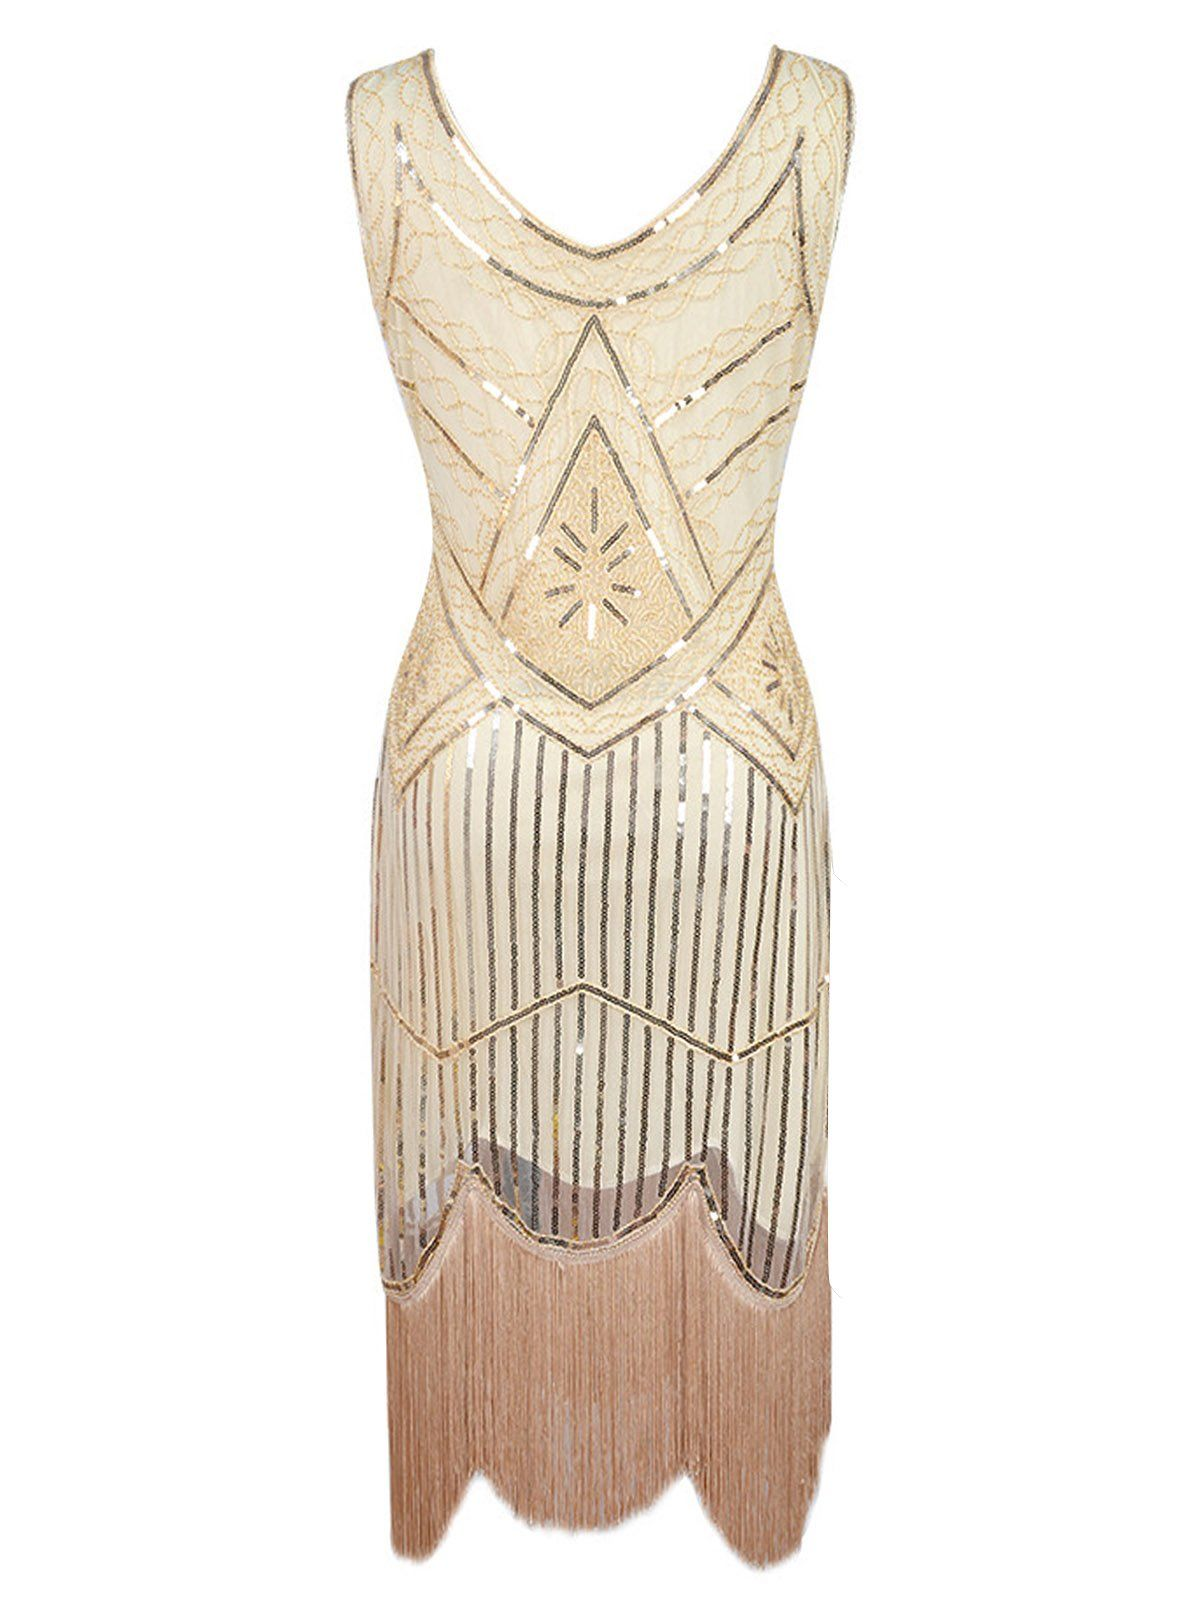 dea2c5aee5d Apricot 1920s Beaded Sequin Flapper Dress – Retro Stage - Chic Vintage  Dresses and Accessories